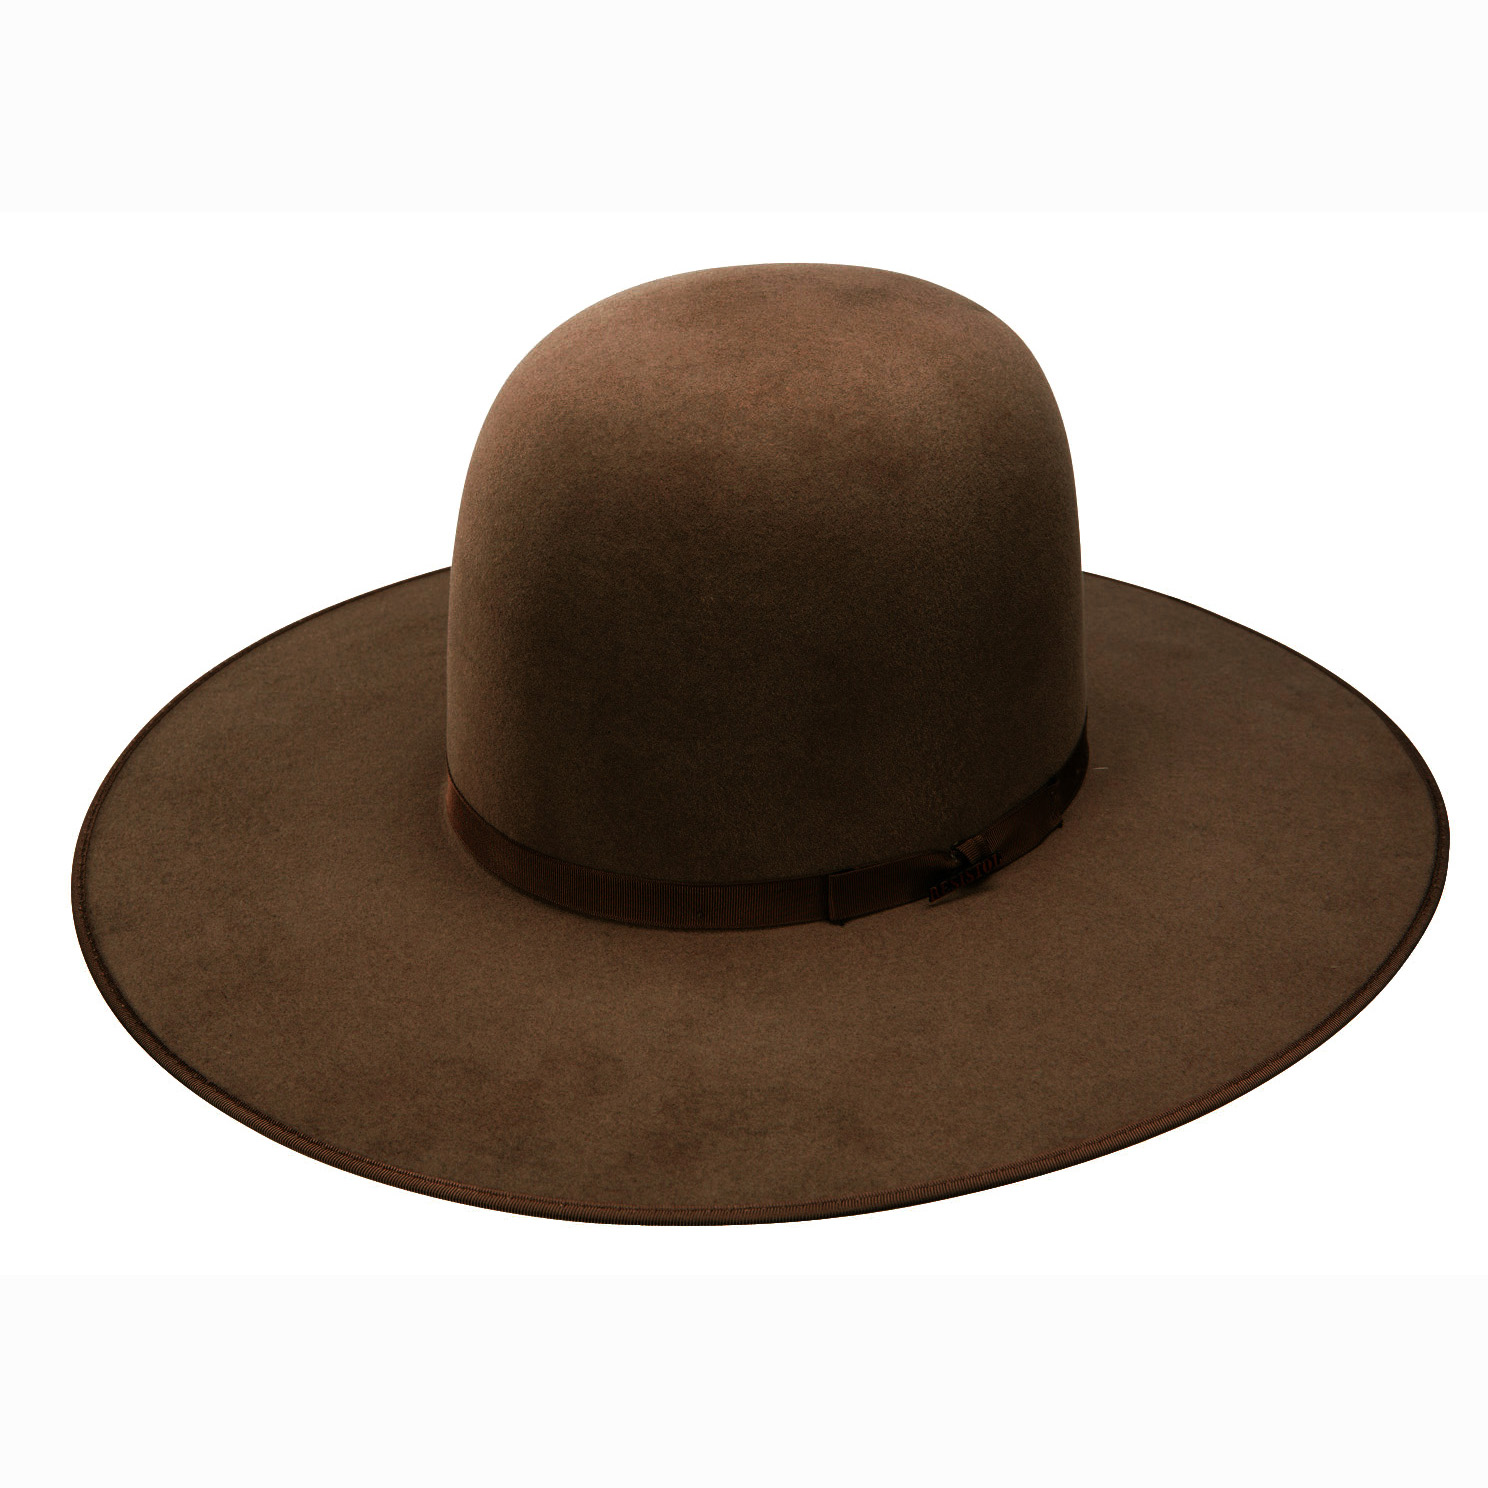 Resistol Showdown B 7X Felt Hat. Tap to expand fb3bfe19497c